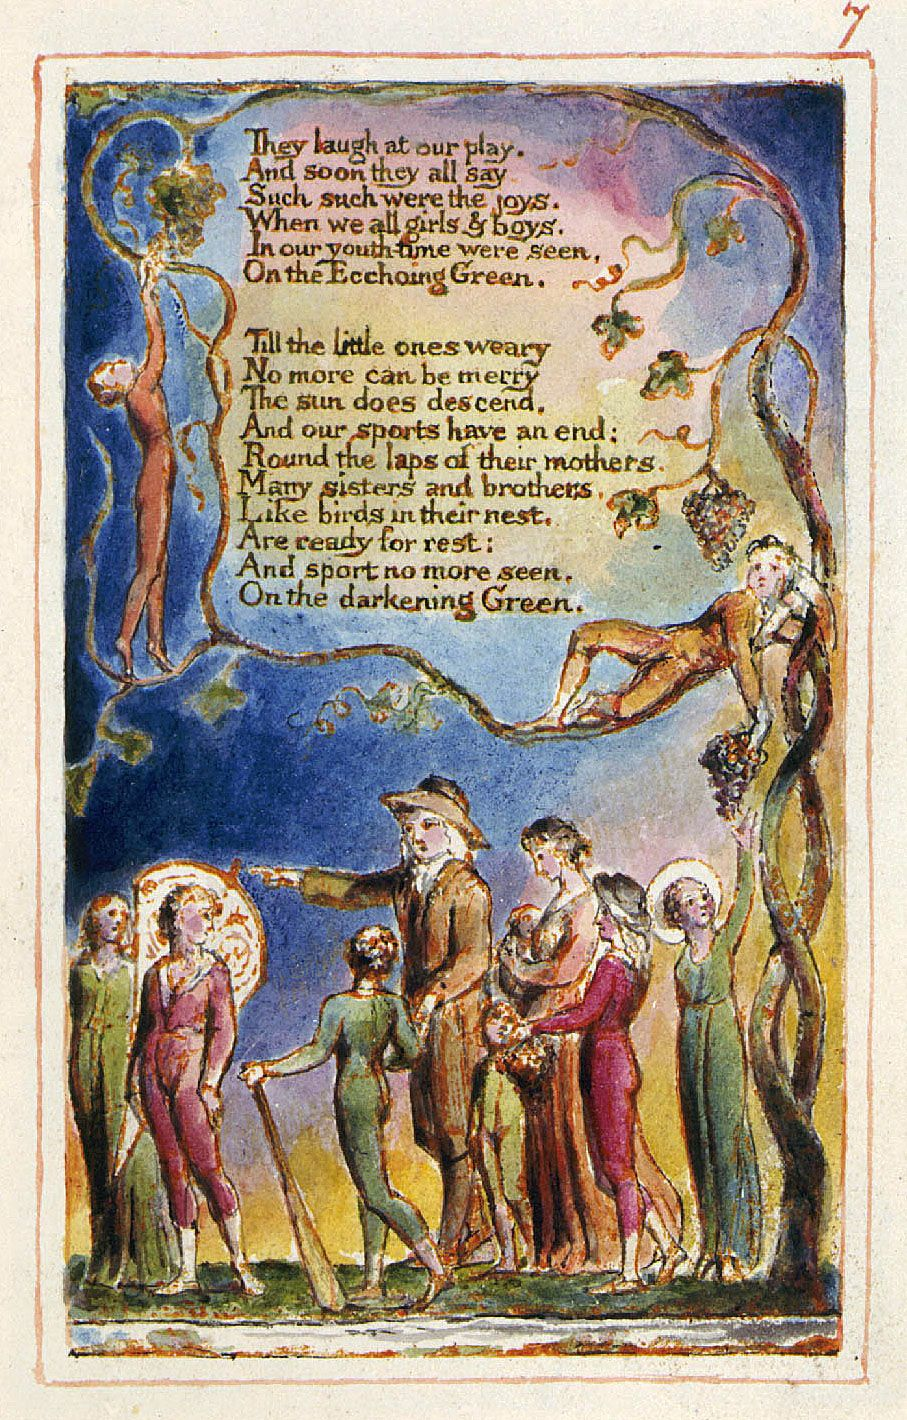 summary of the poem the echoing green by william blake